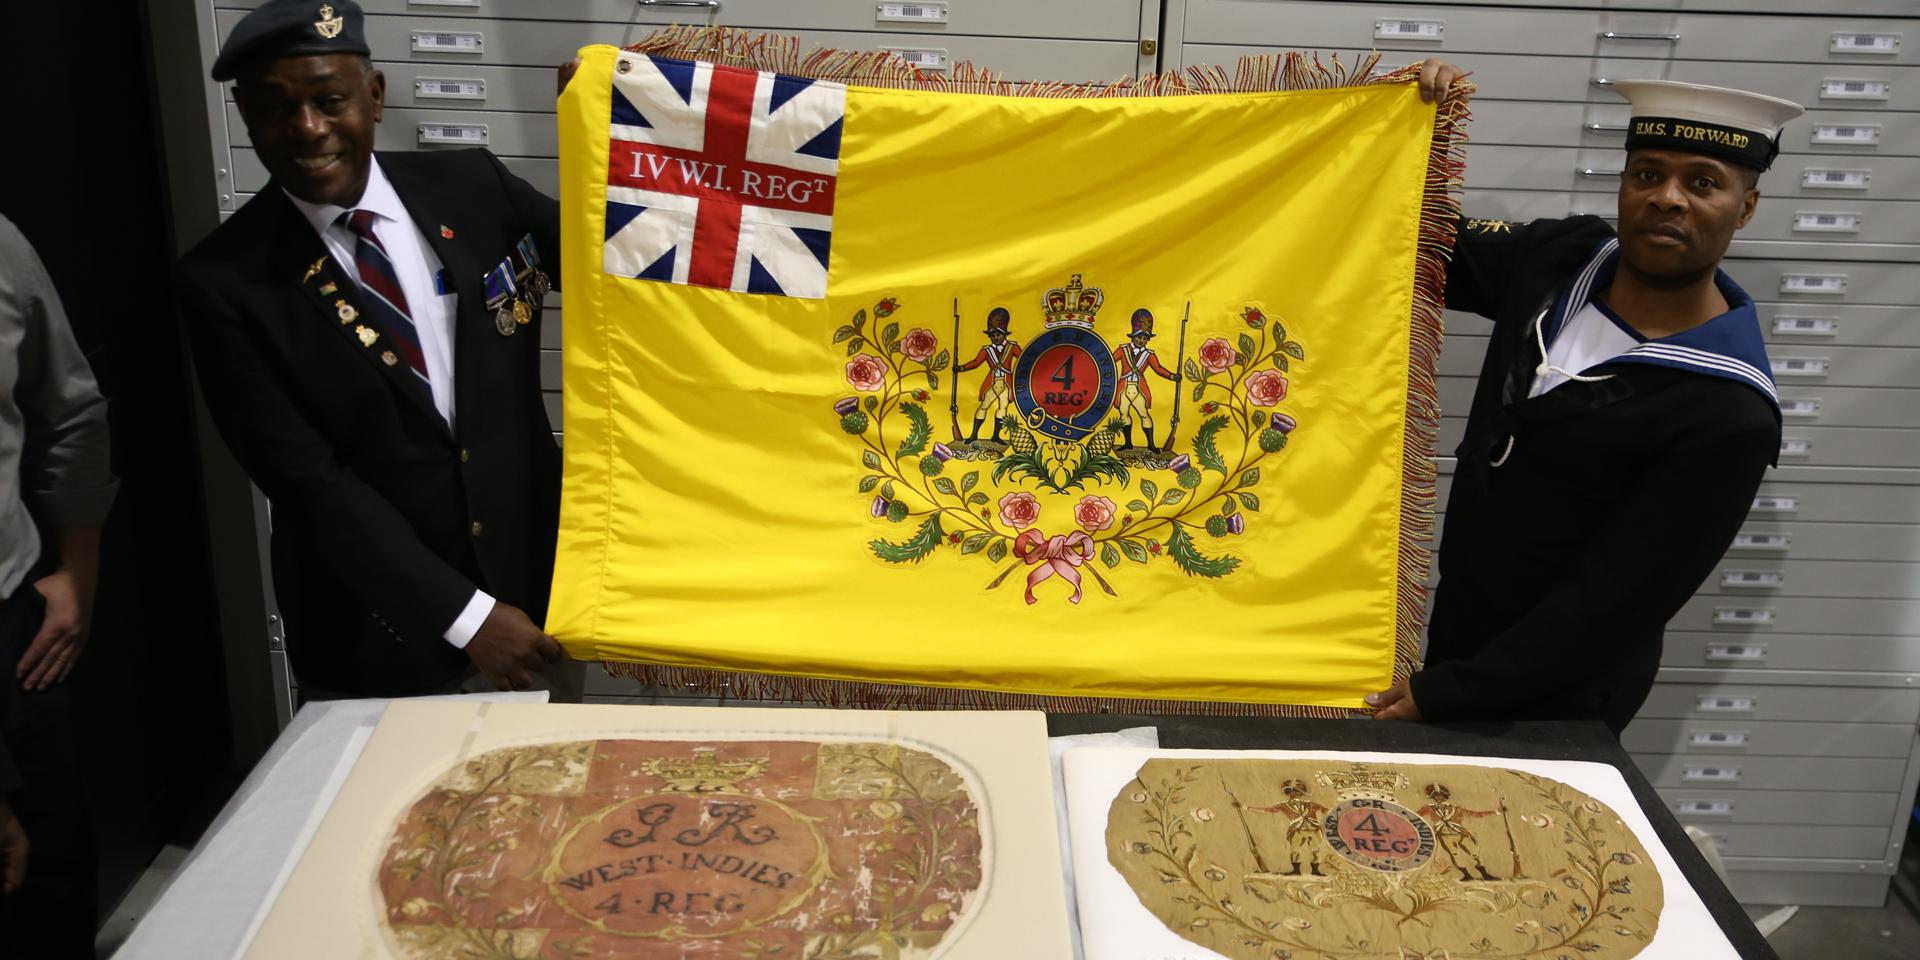 Workshop participants with their replica of the 4th West India Regiment flag